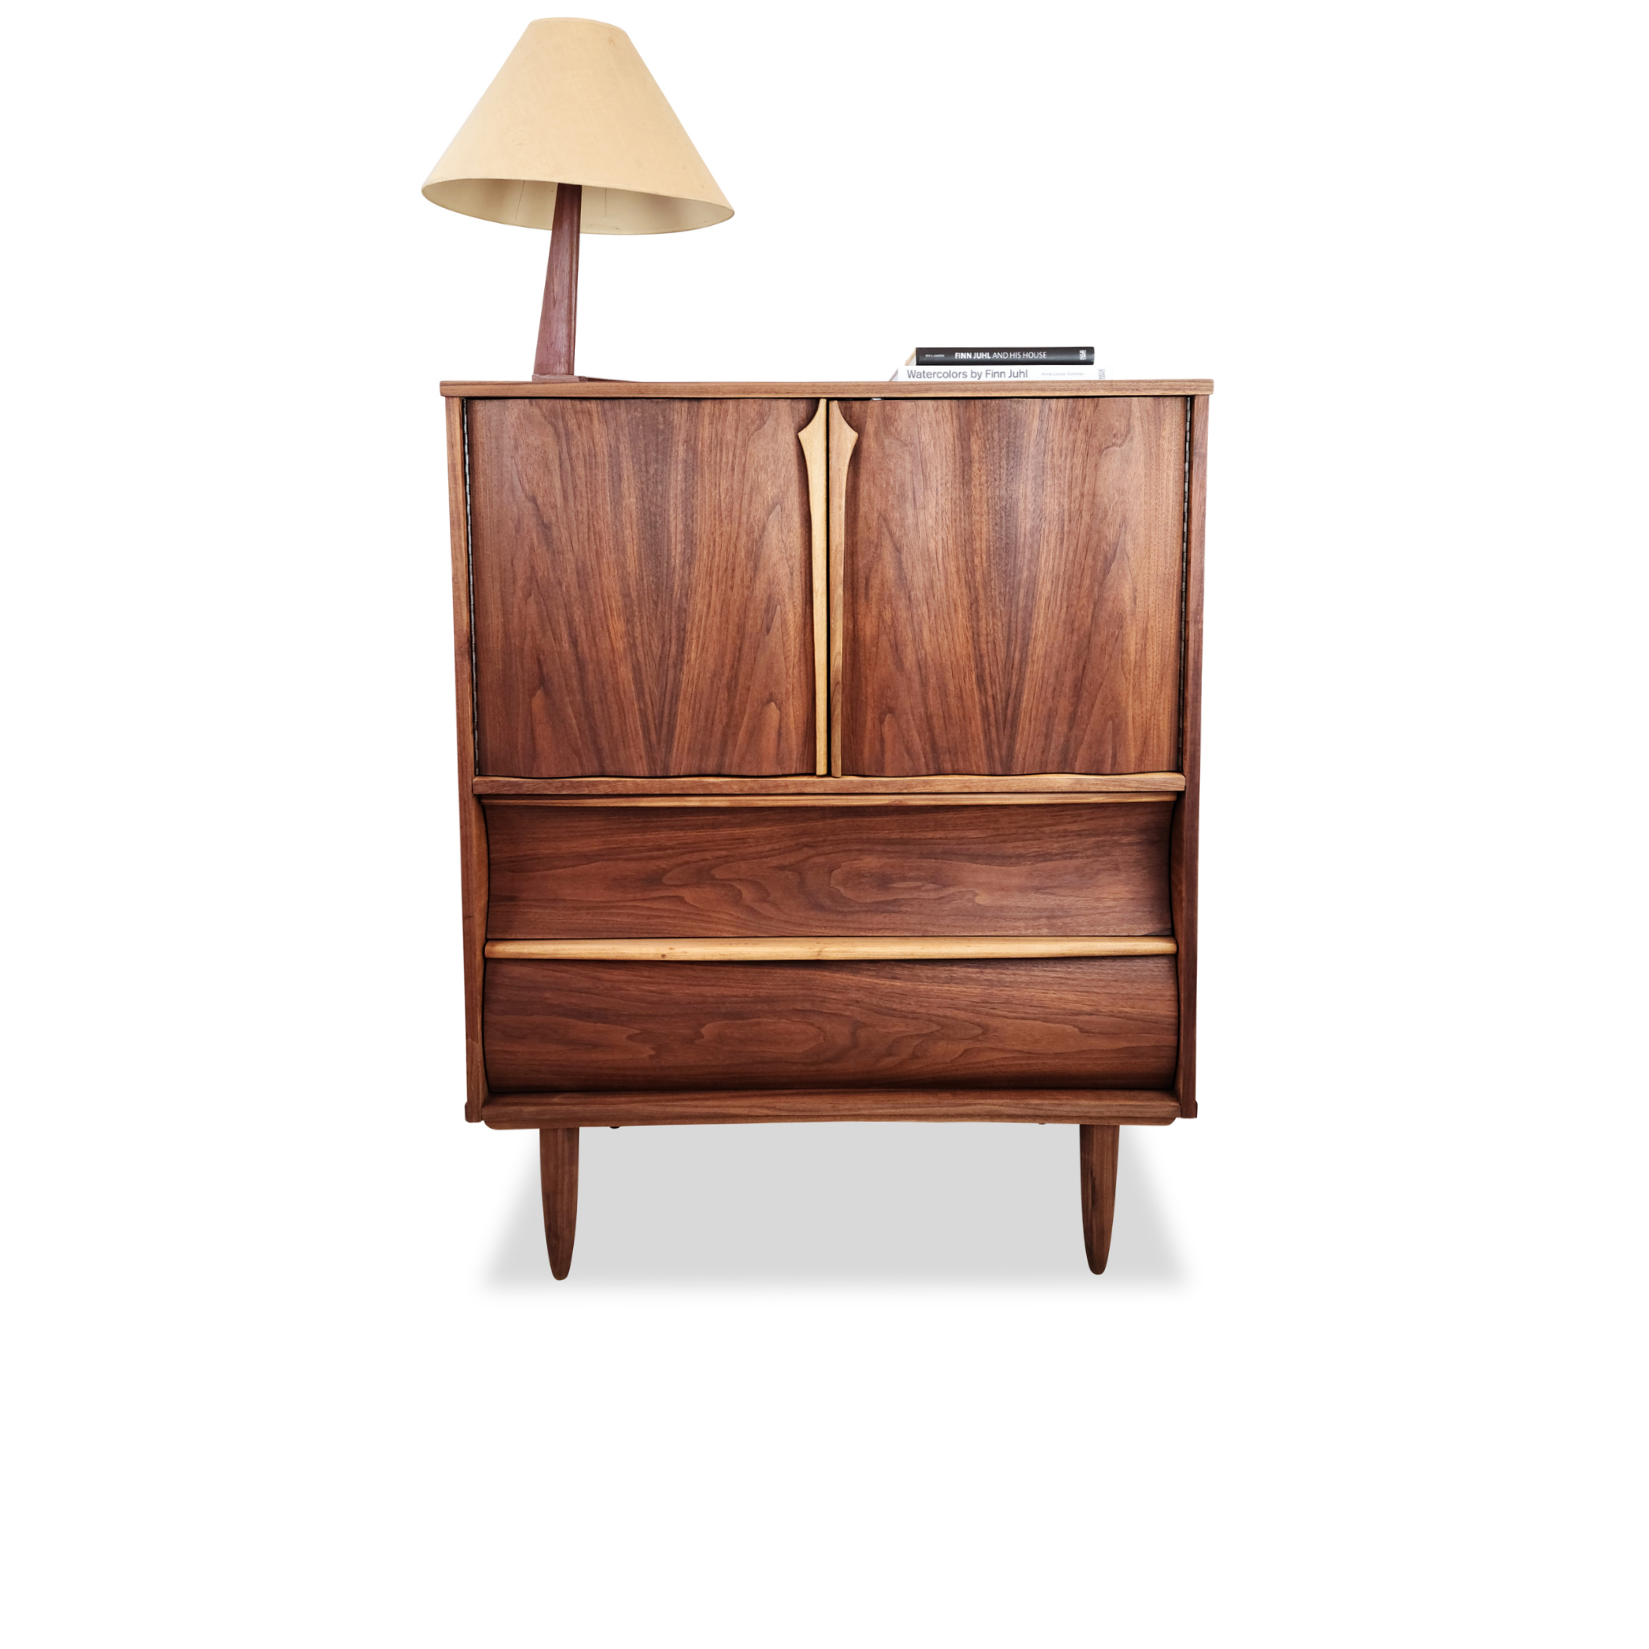 Walnut Upright Dresser